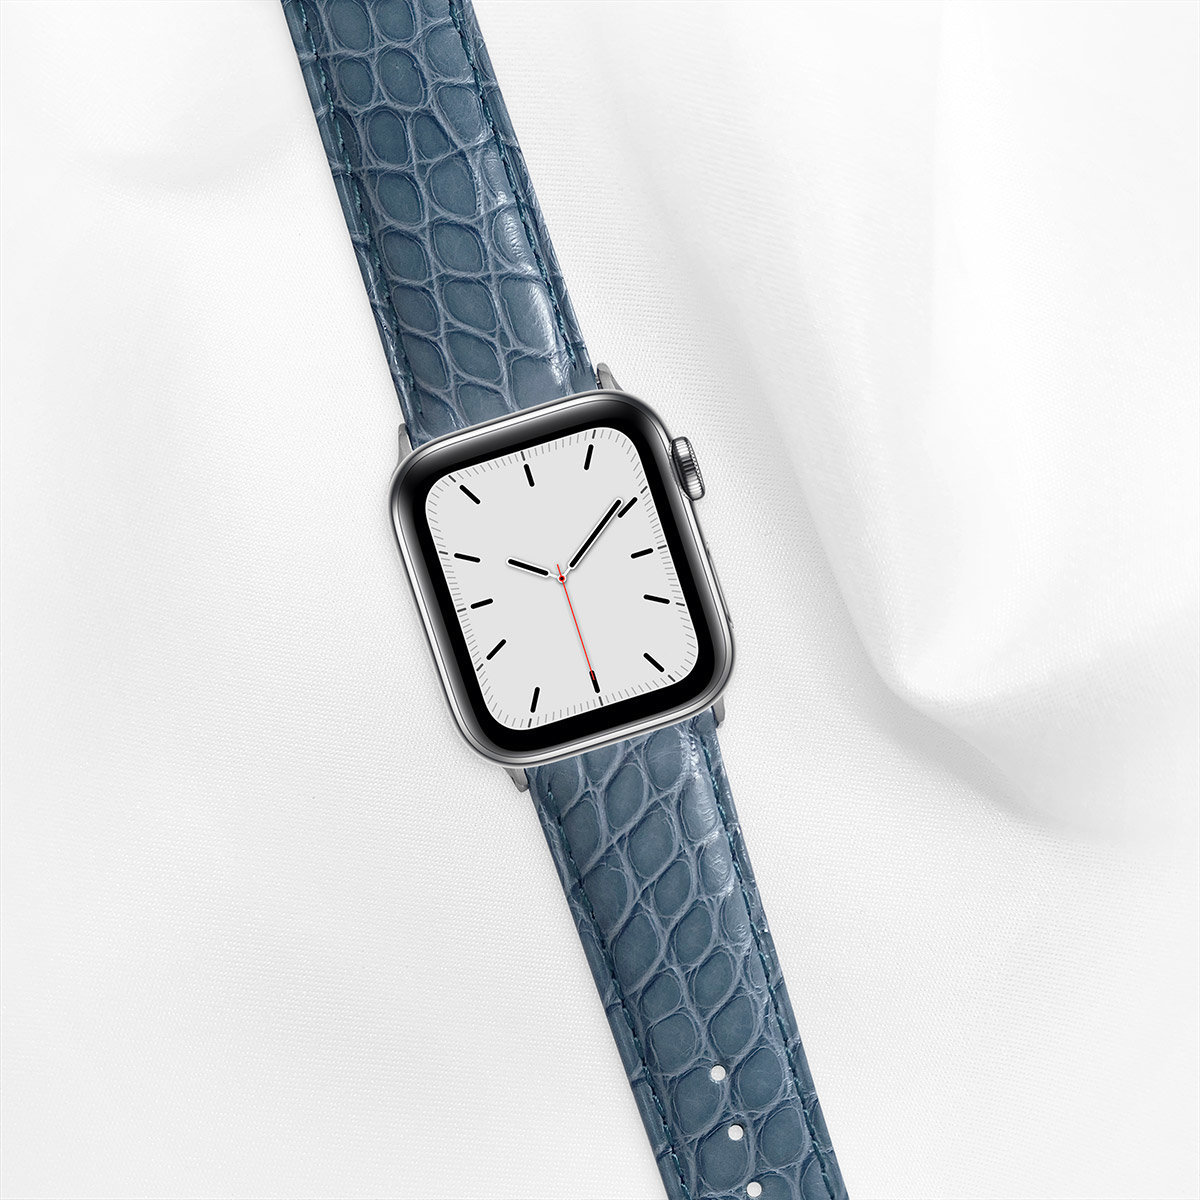 Shiny Alligator 40mm Apple Watch 5 Strap, Storm Blue, Round Scales, for Small Casing